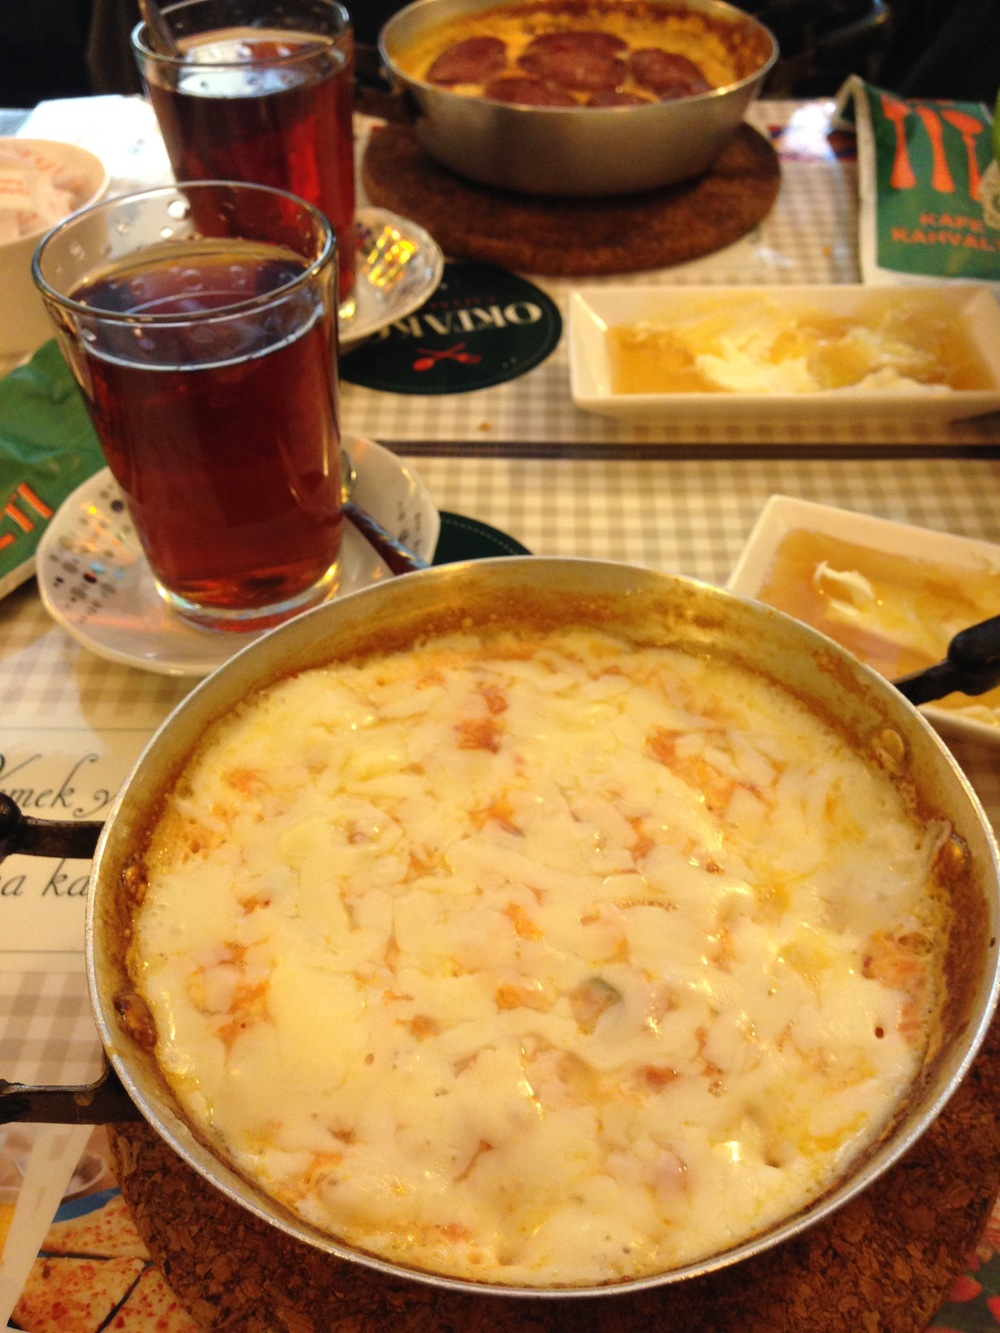 Menemen with kaşar peyniri on top